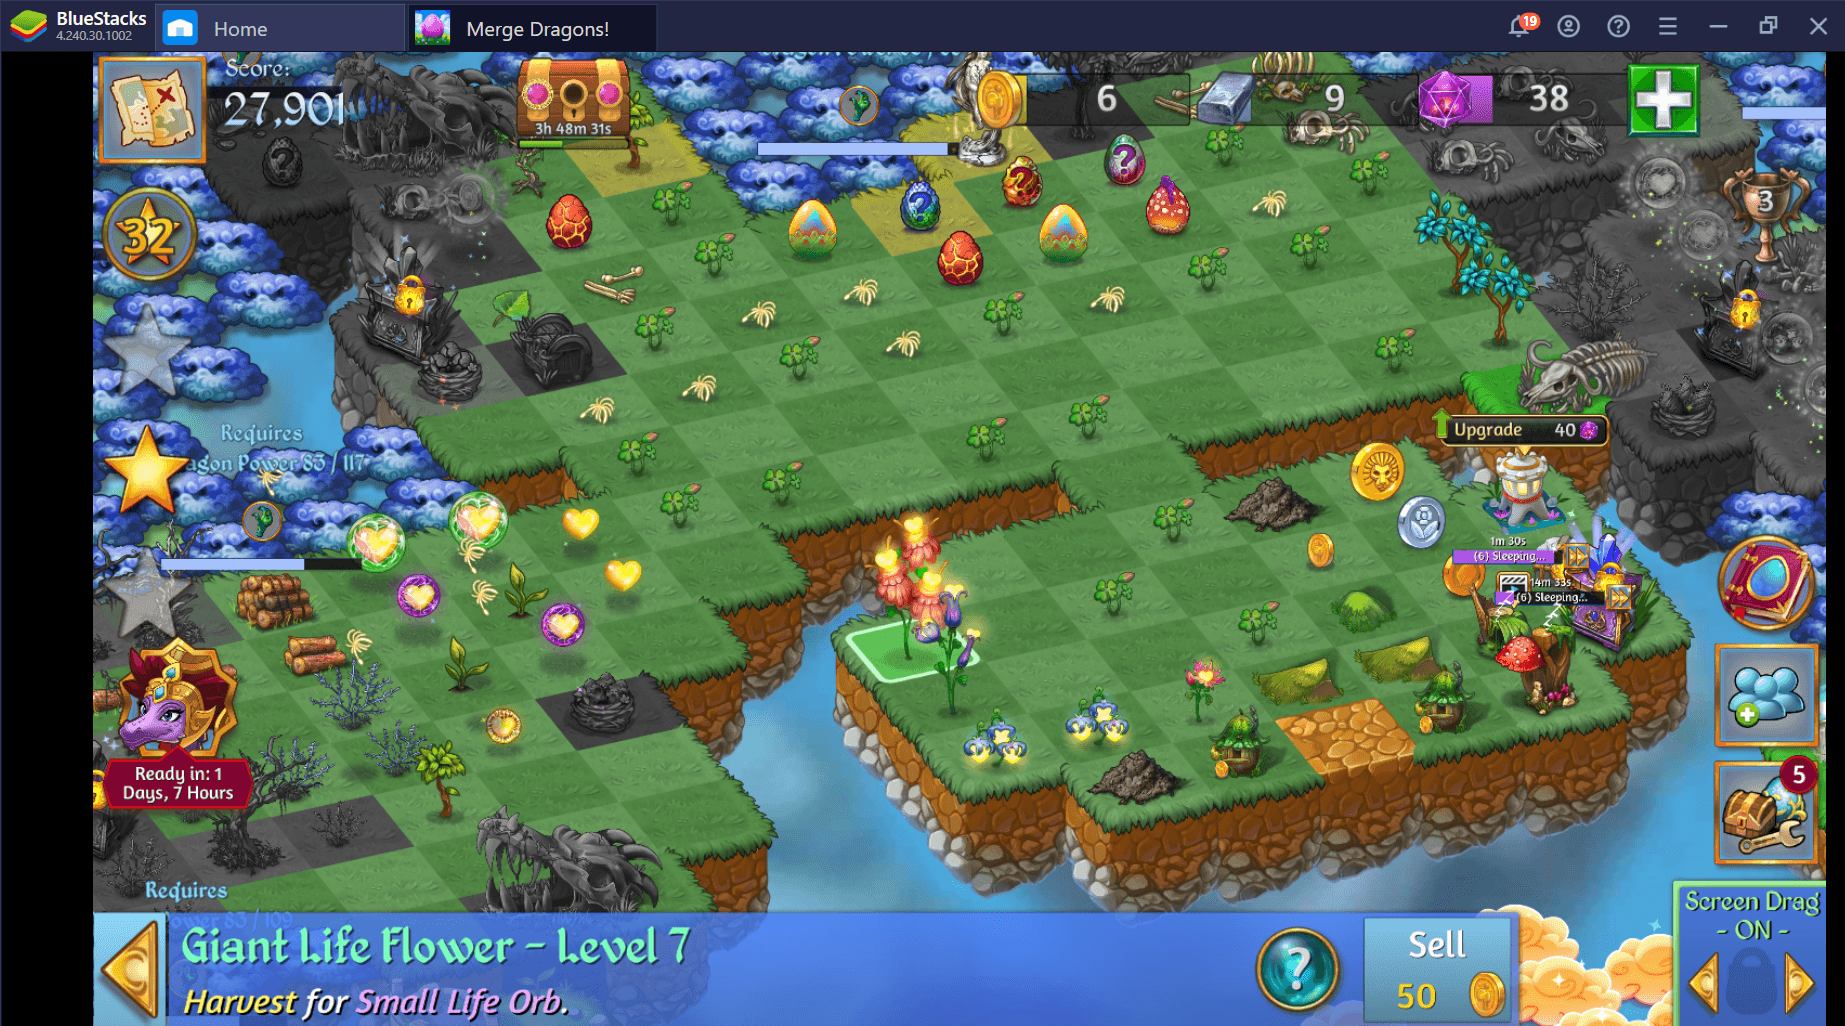 How to Gain Life Flowers in Merge Dragons on PC to Progress Faster